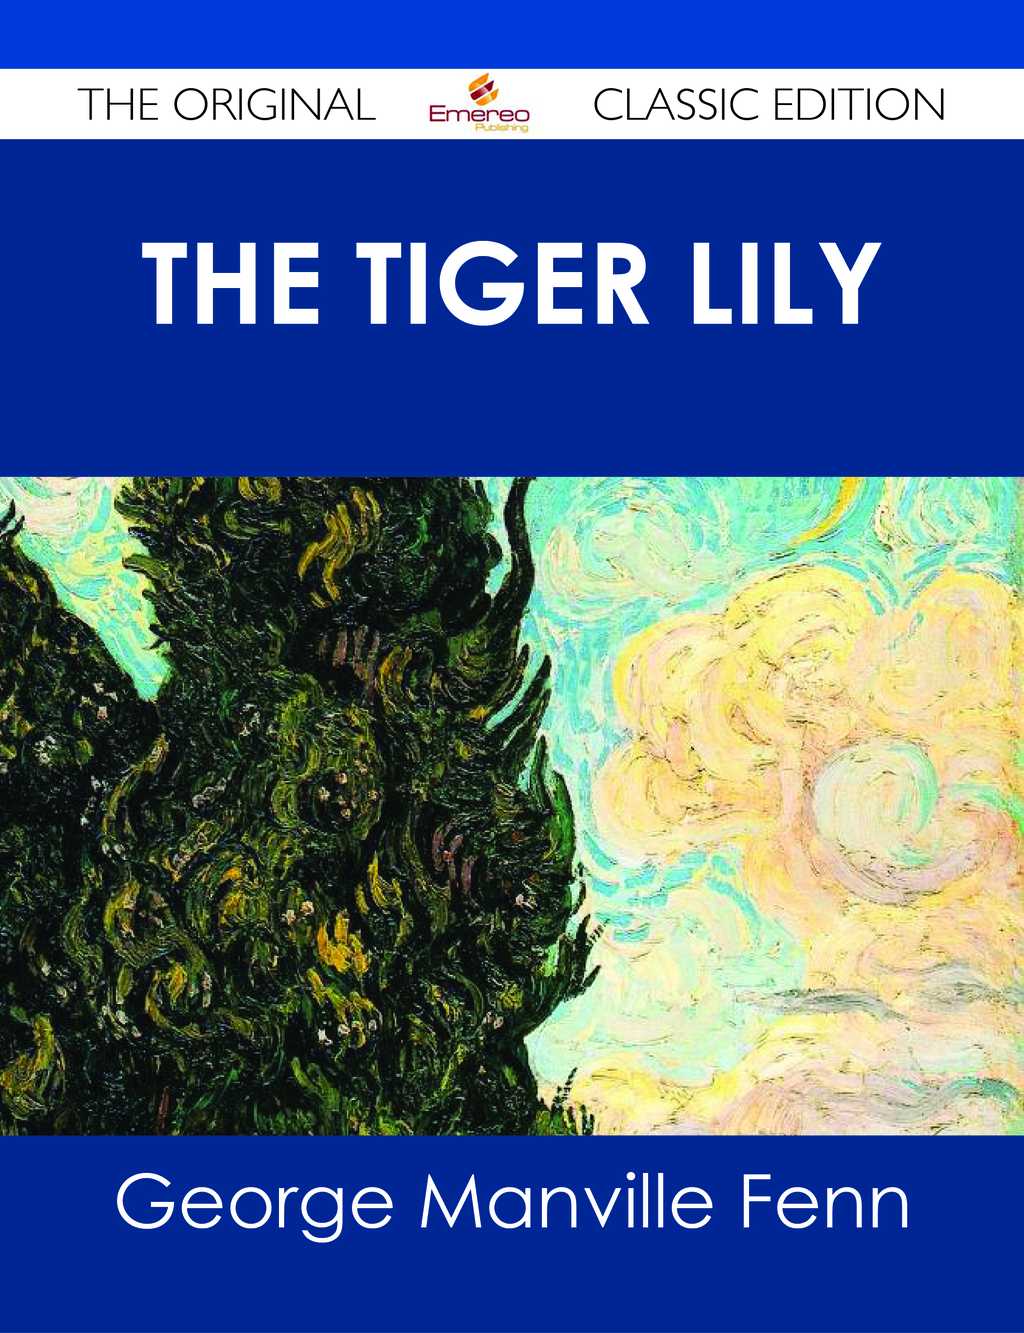 The Tiger Lily - The Original Classic Edition